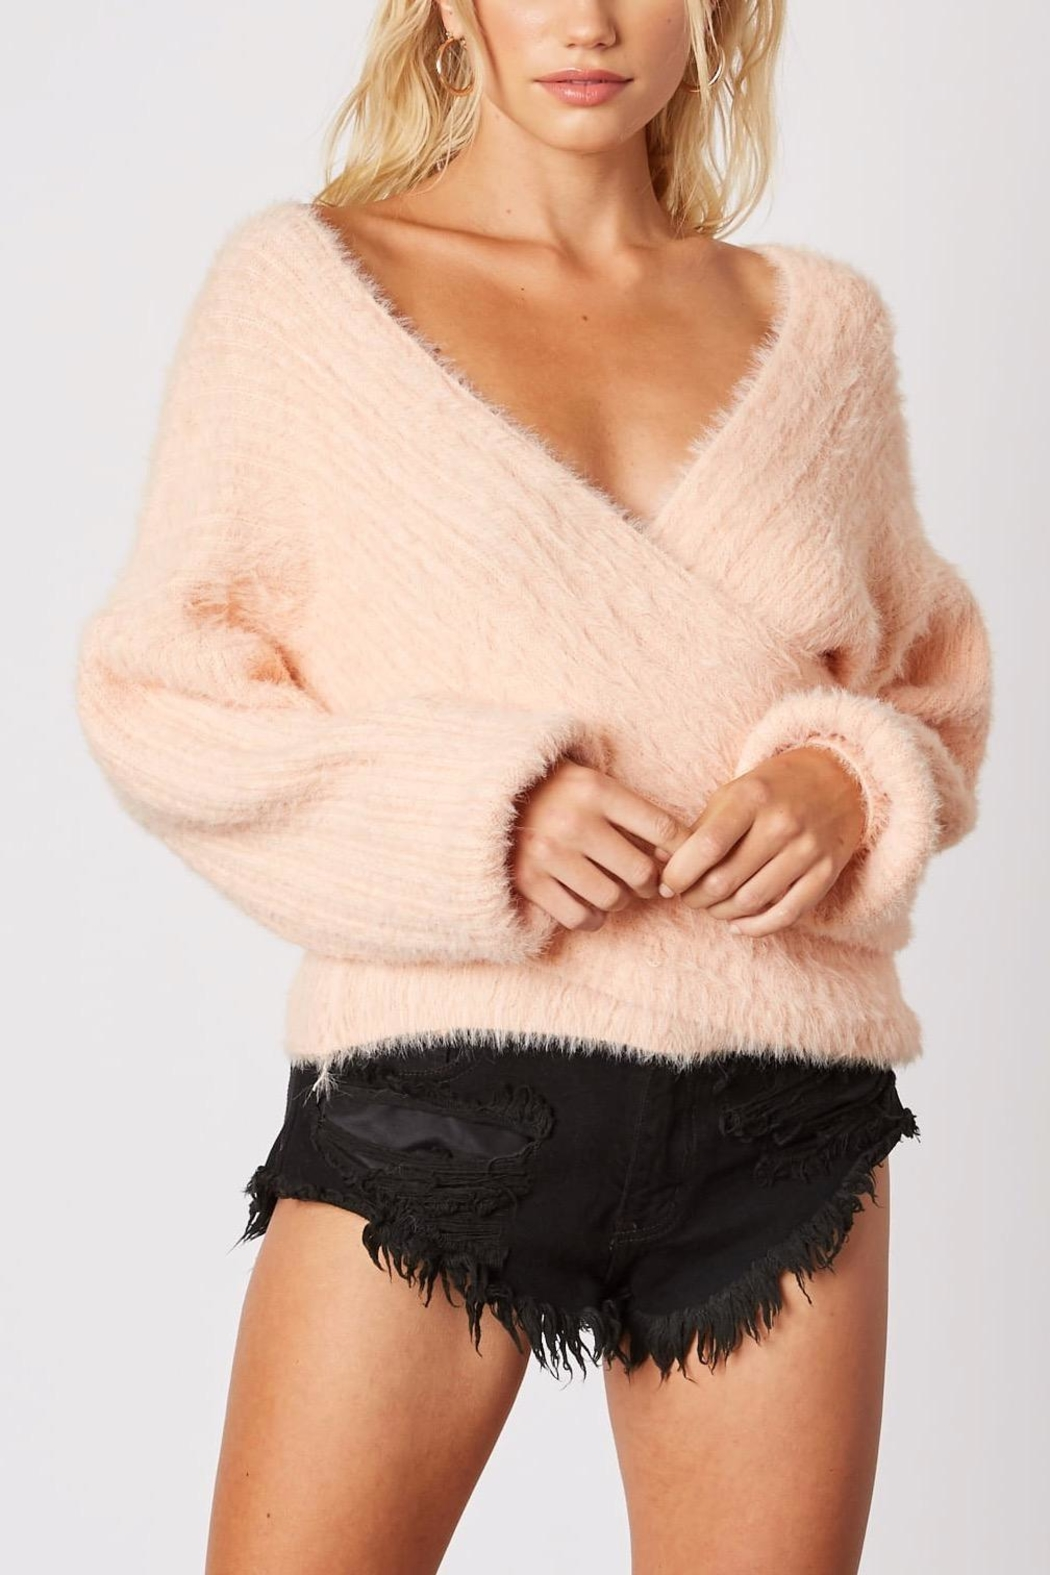 Cotton Candy LA Plunging-Loose Peach Sweater - Main Image